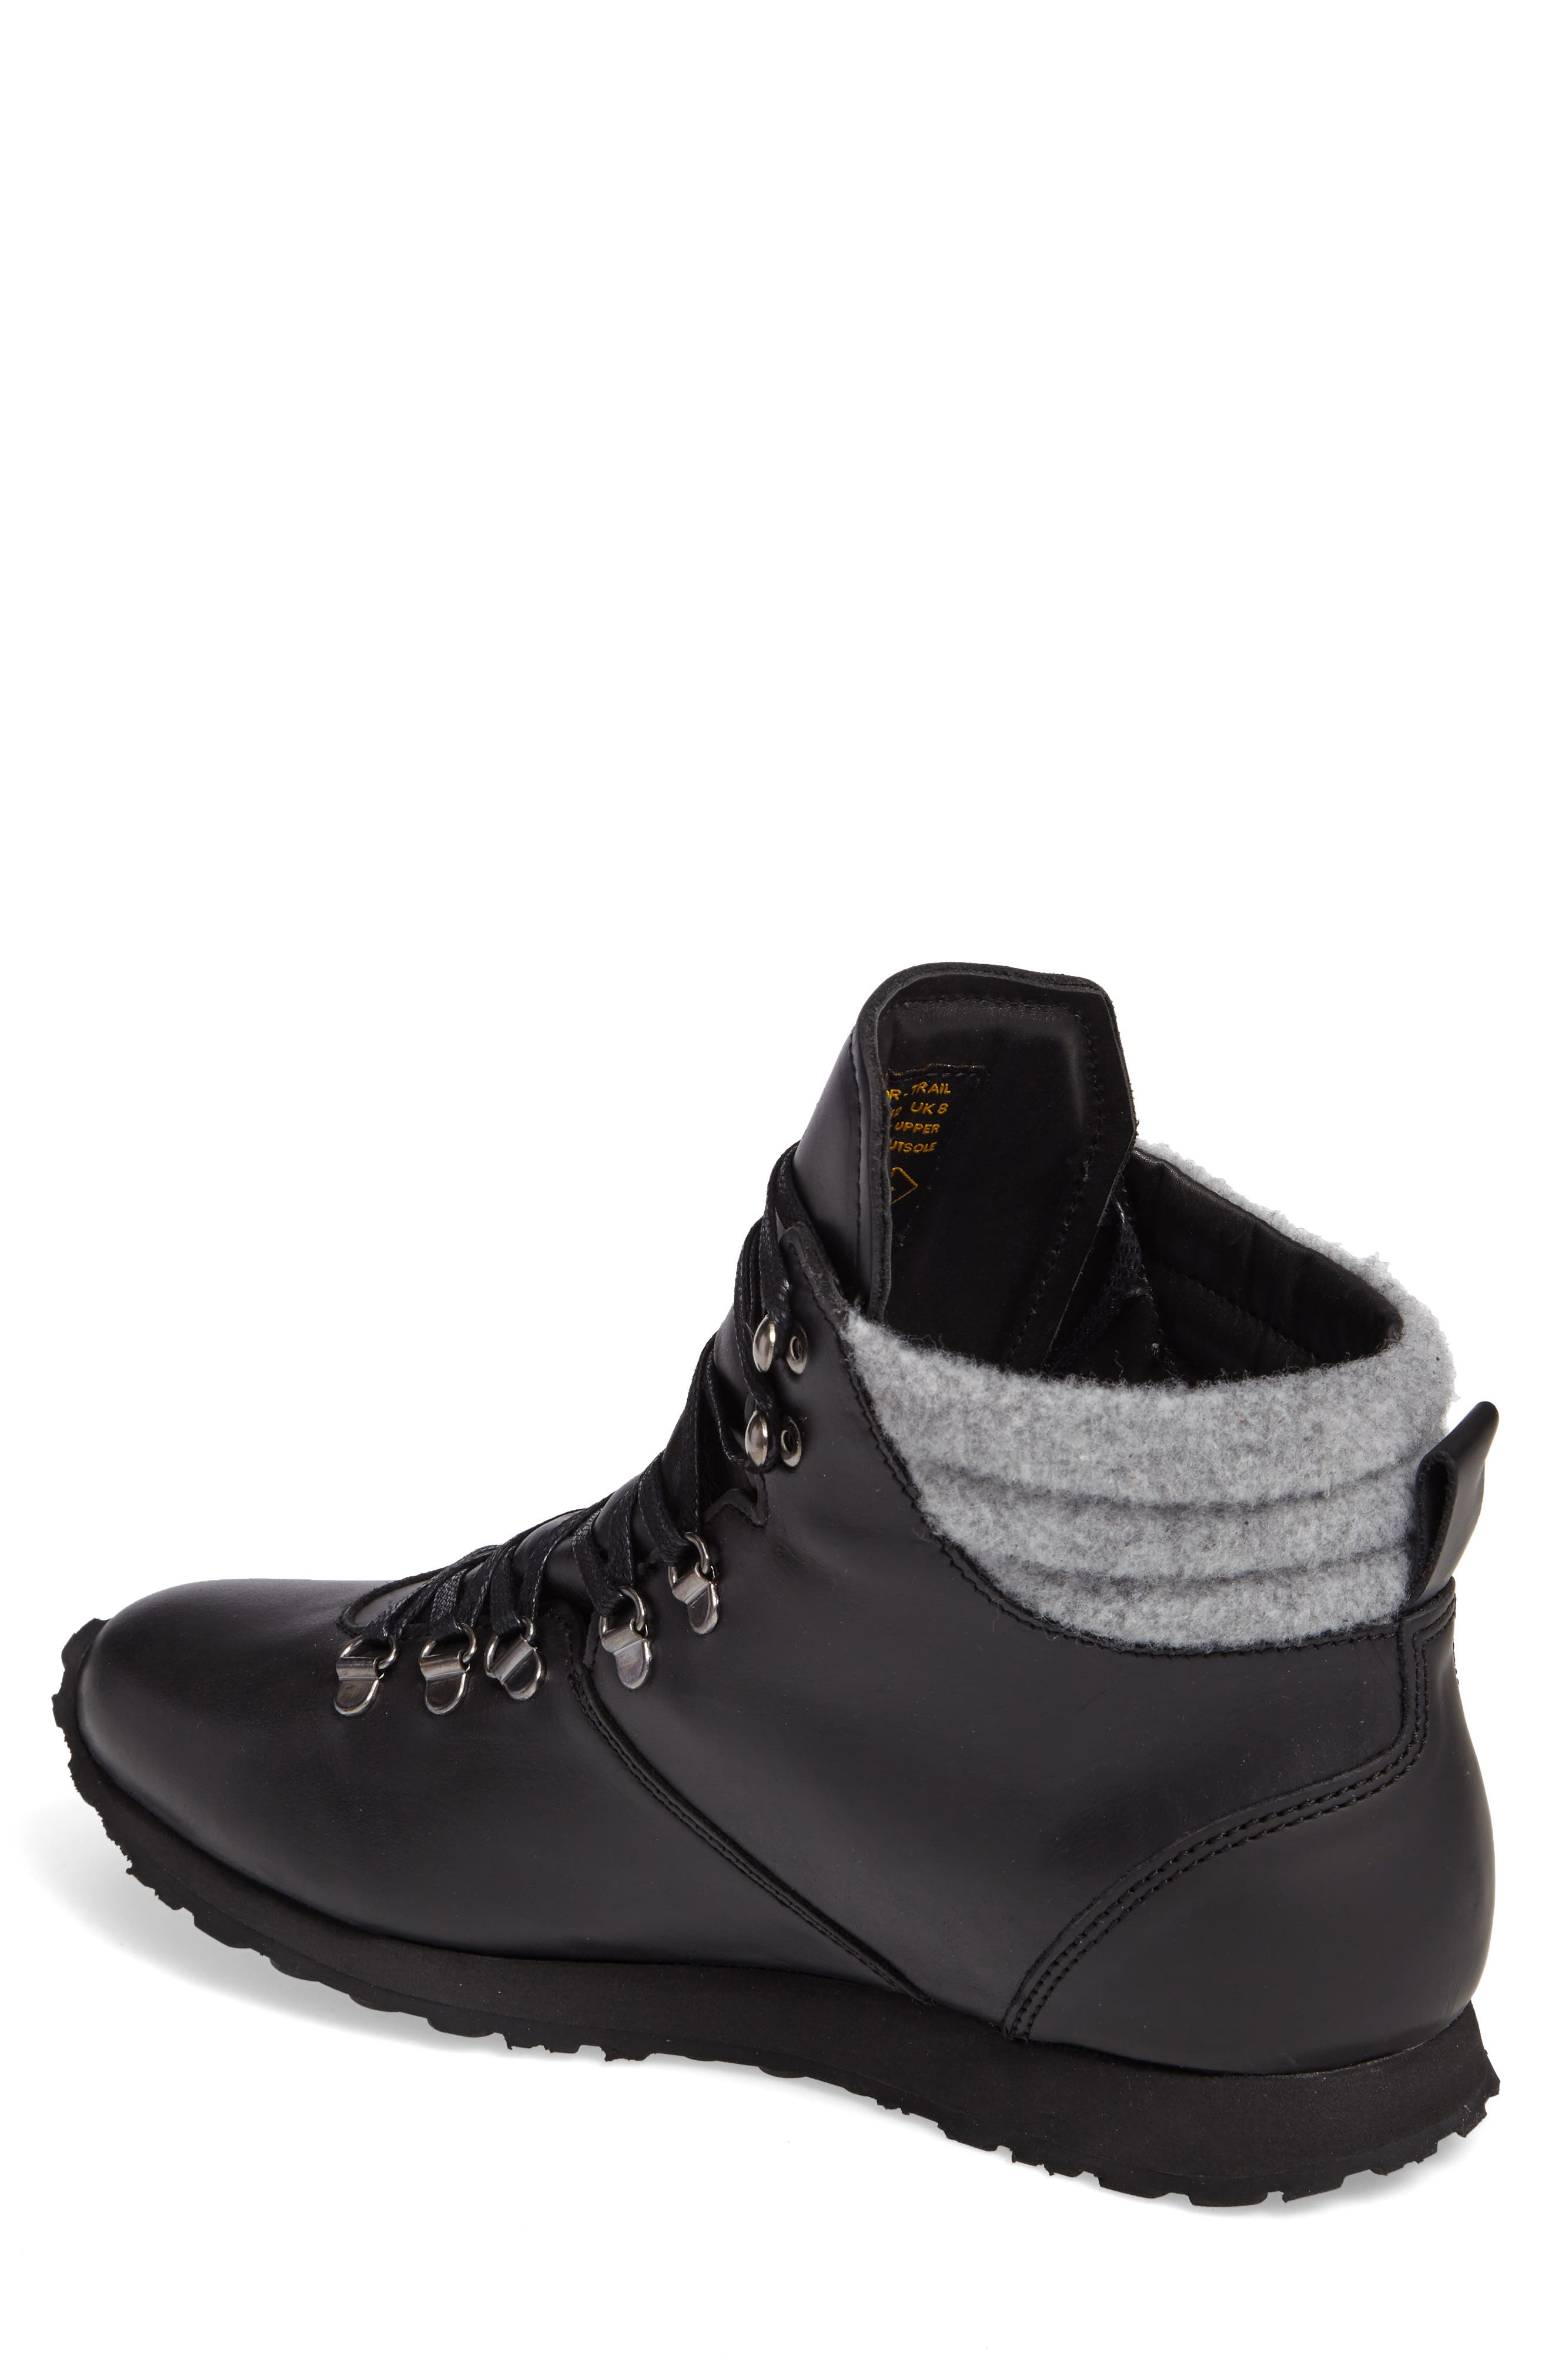 Concord Mid Top Wool Cuffed Waterproof Boot,                             Alternate thumbnail 3, color,